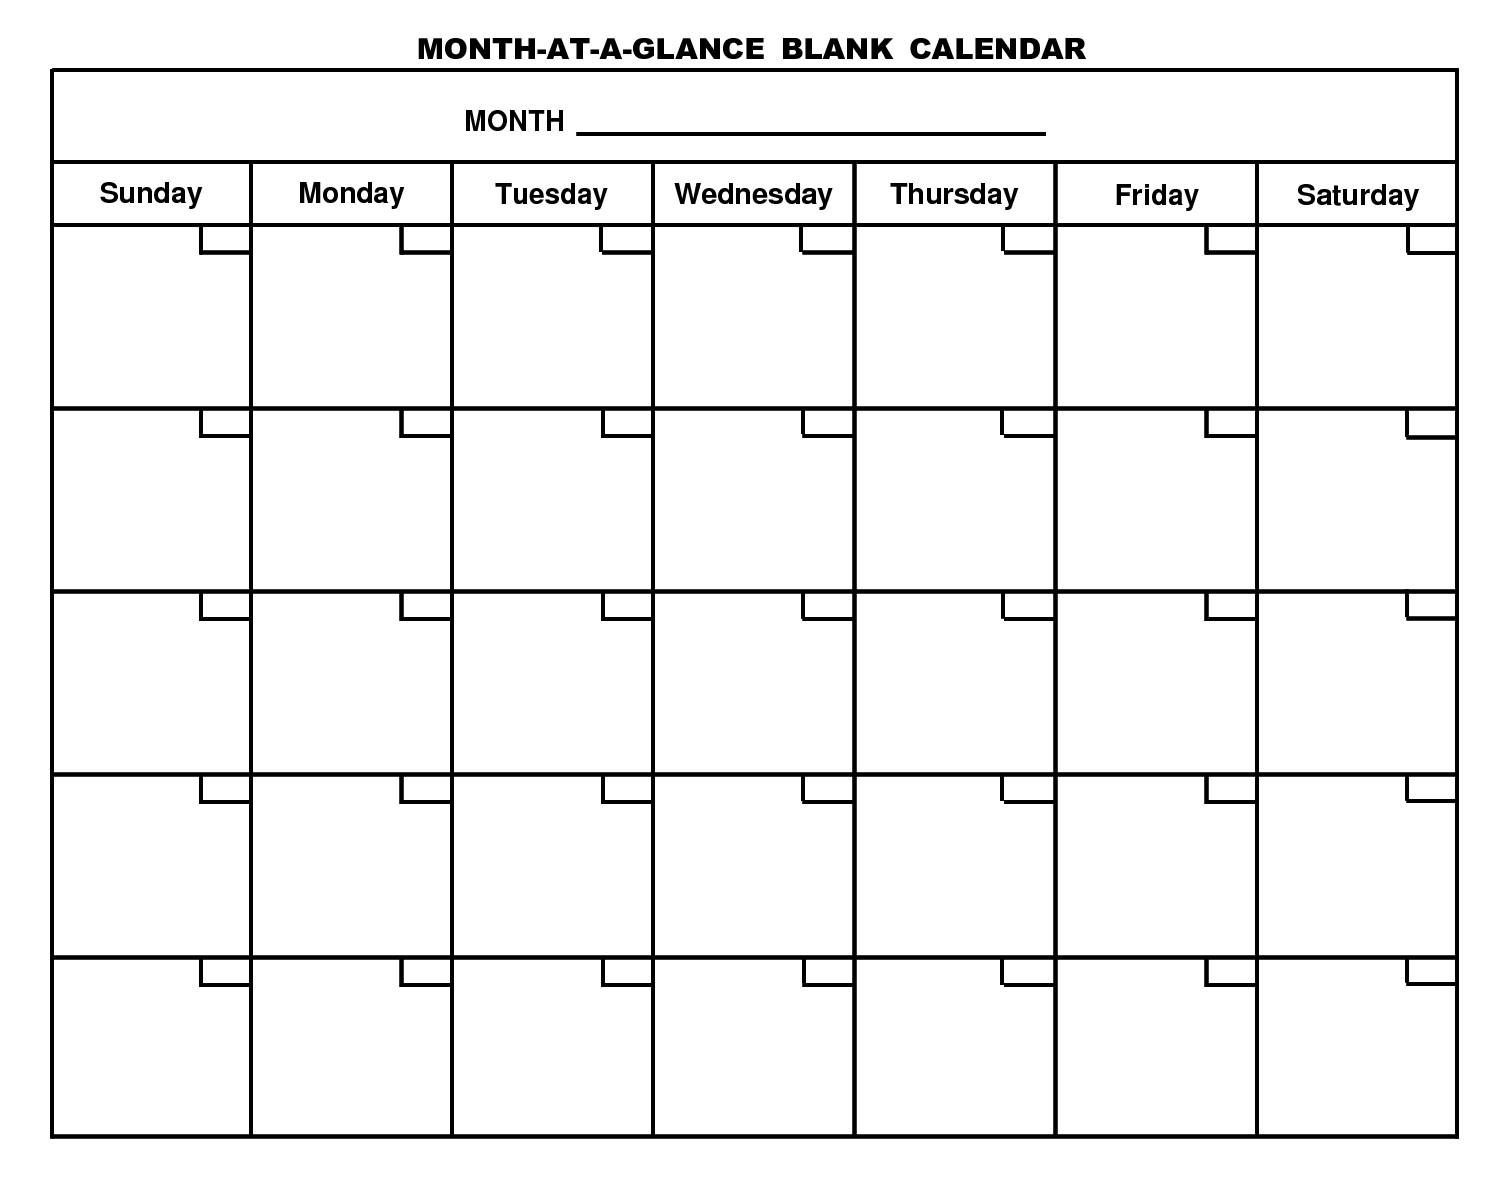 Free Printable Monthly Calendar With Large Boxes Skymaps-Month At A Glance Blank Calendar Printable